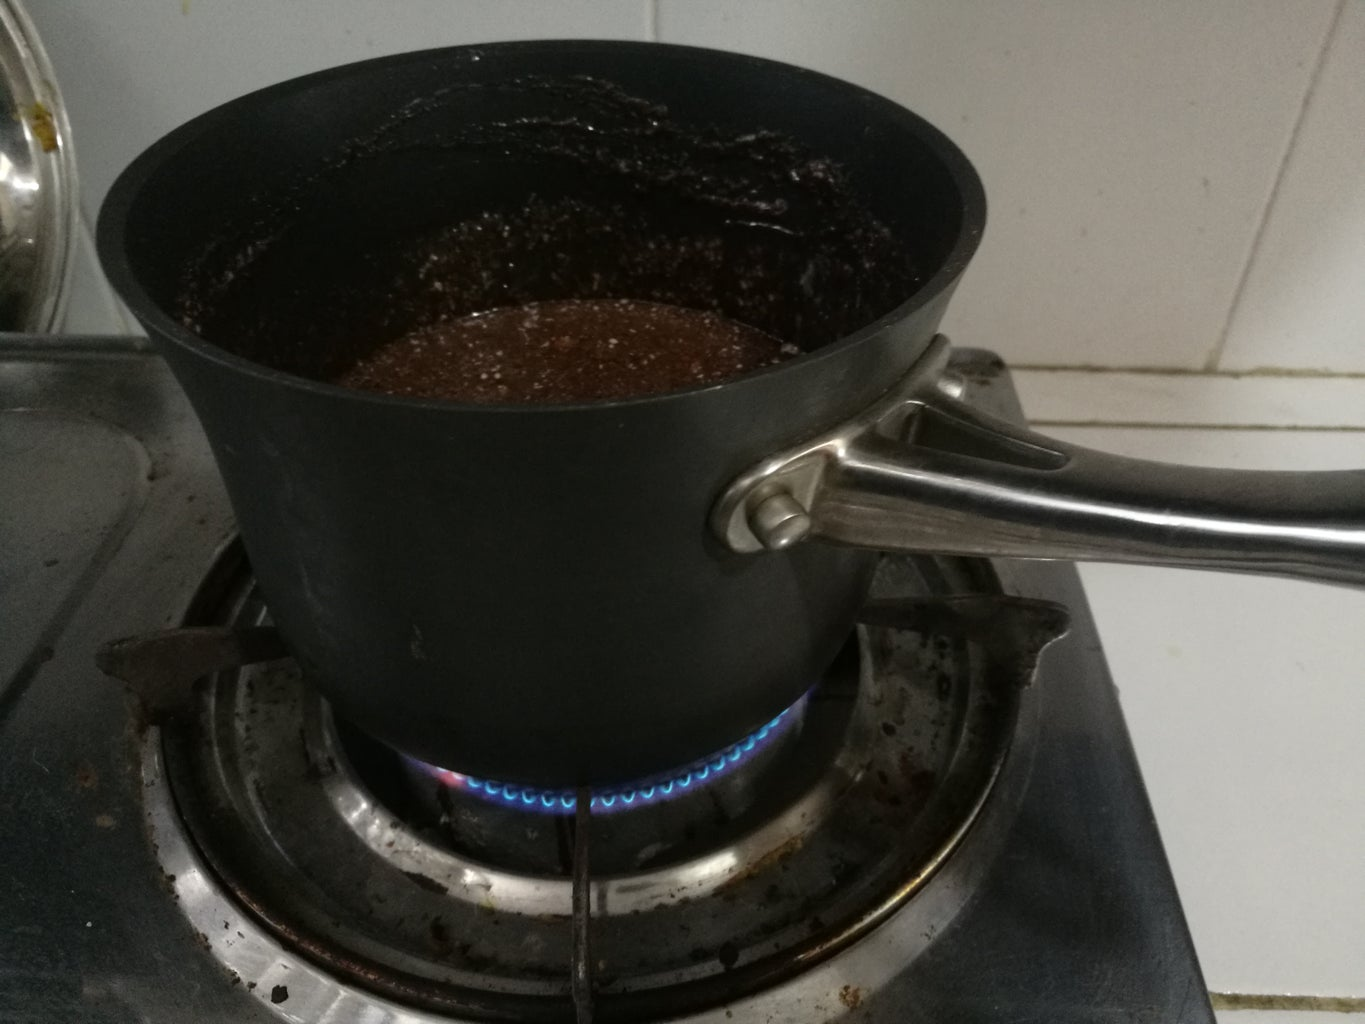 Boiling and Combining Second Ingredients